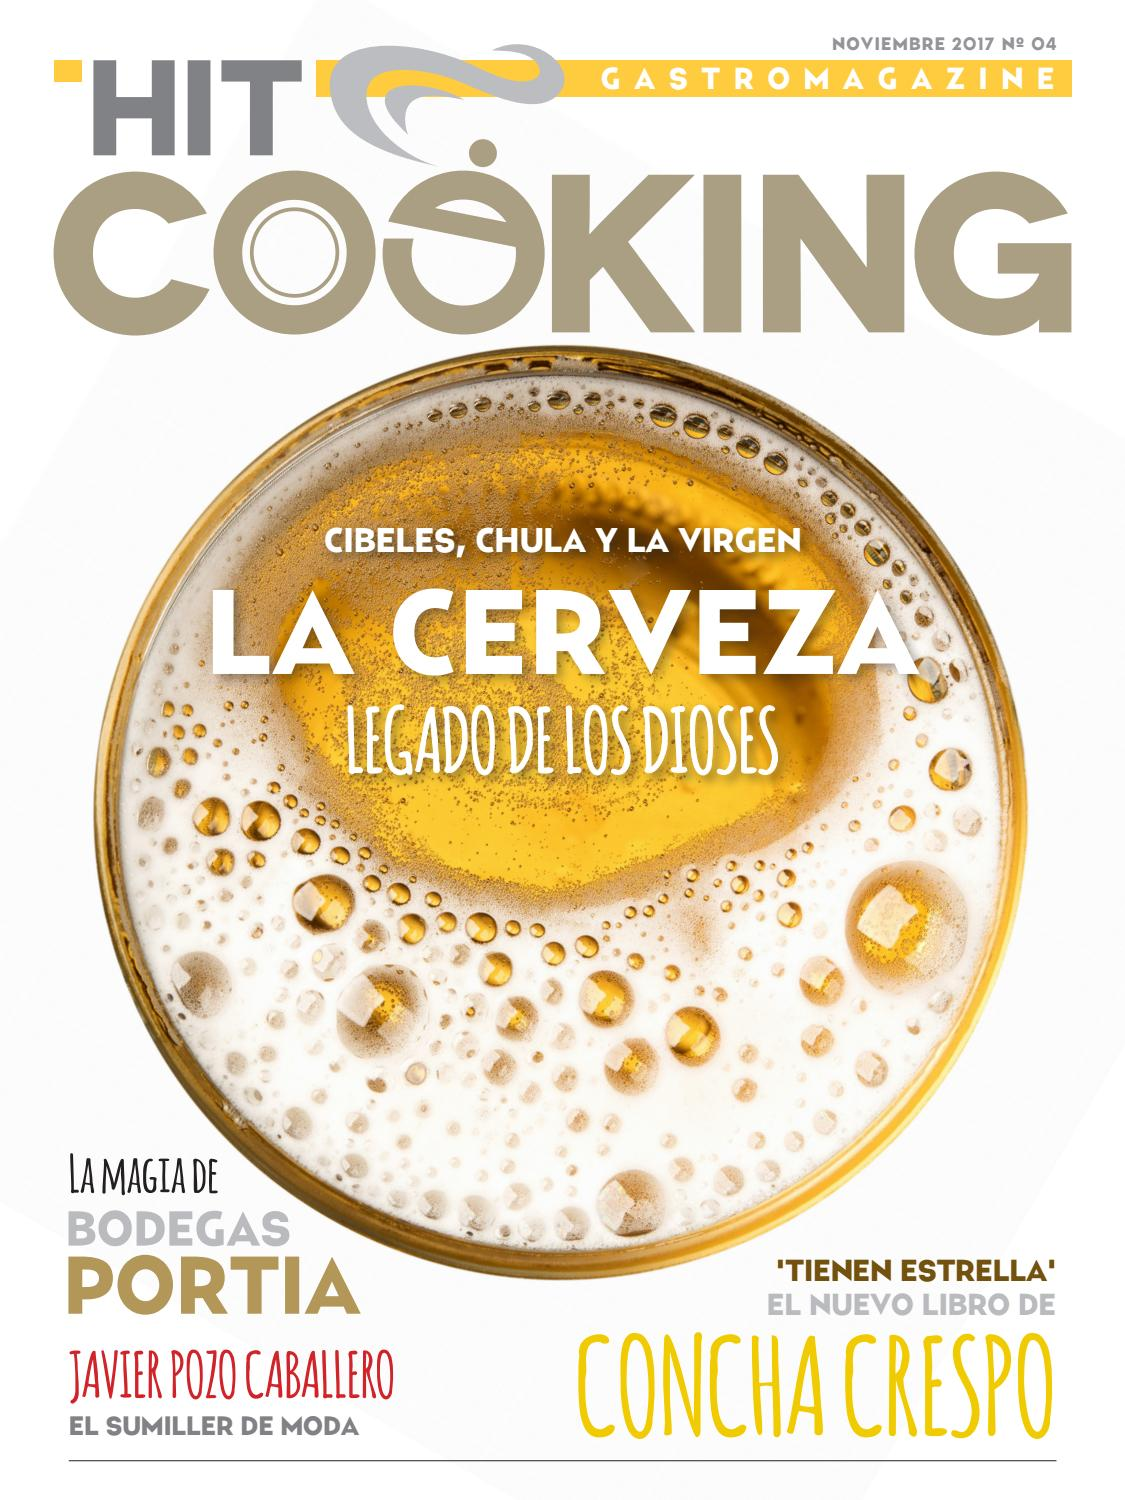 HITCOOKING Gastromagazine N_04 by HITCOOKING - issuu